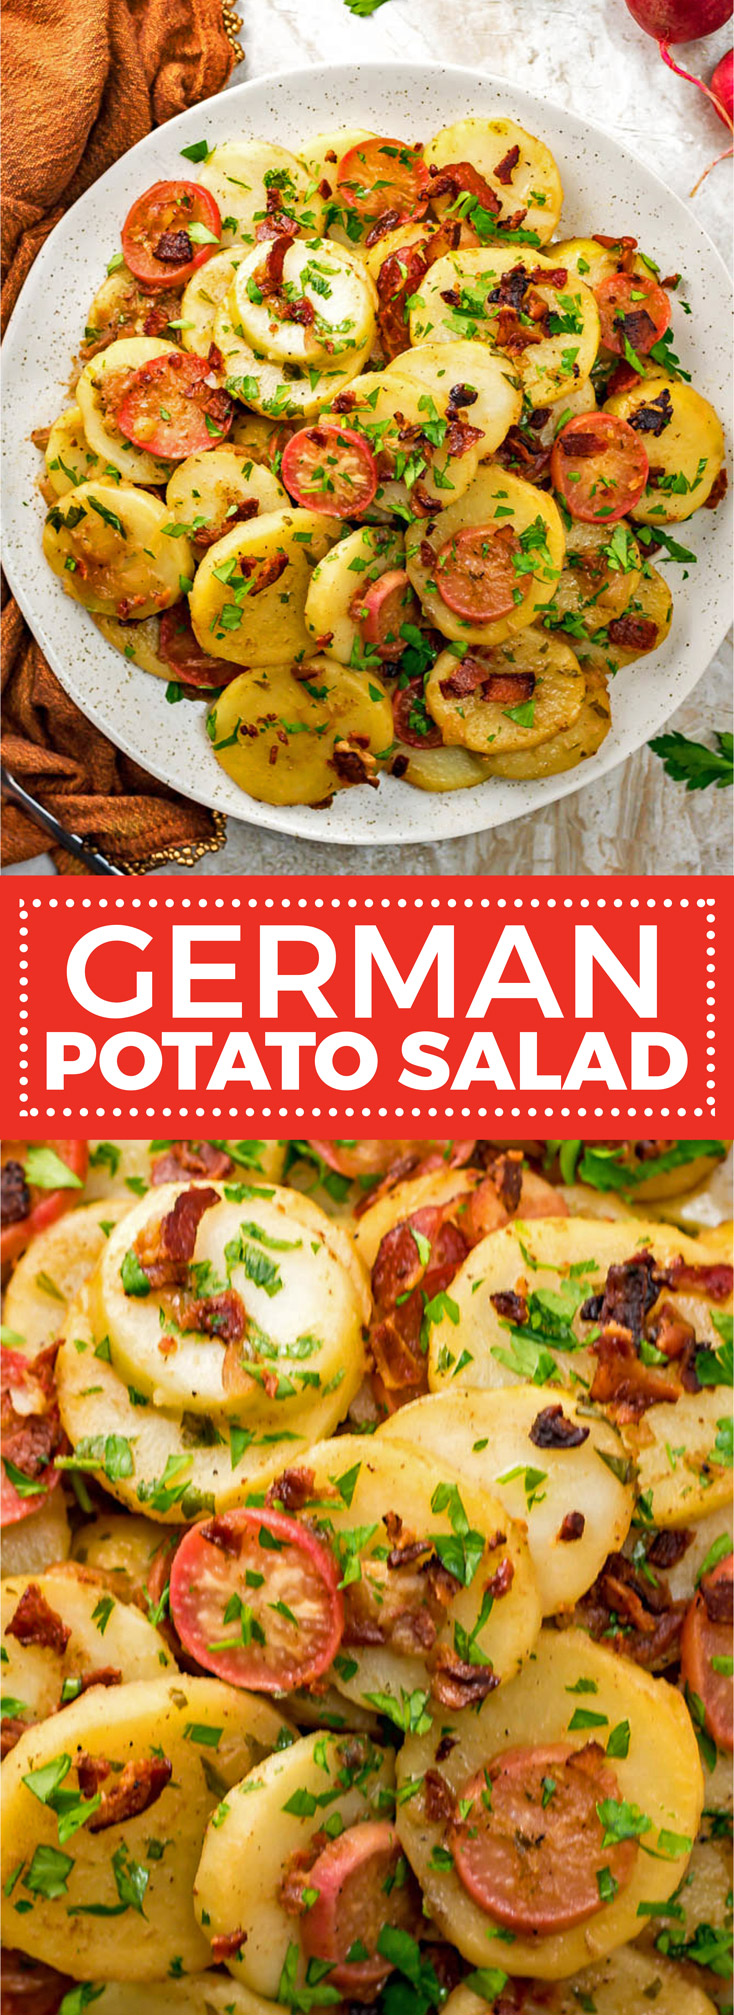 German Potato Salad is the ultimate mayo-free summer side dish. With bacon, broth, and vinegar in the mix, there's no shortage of flavor in this potato salad, which is served warm or at room temperature. | hostthetoast.com